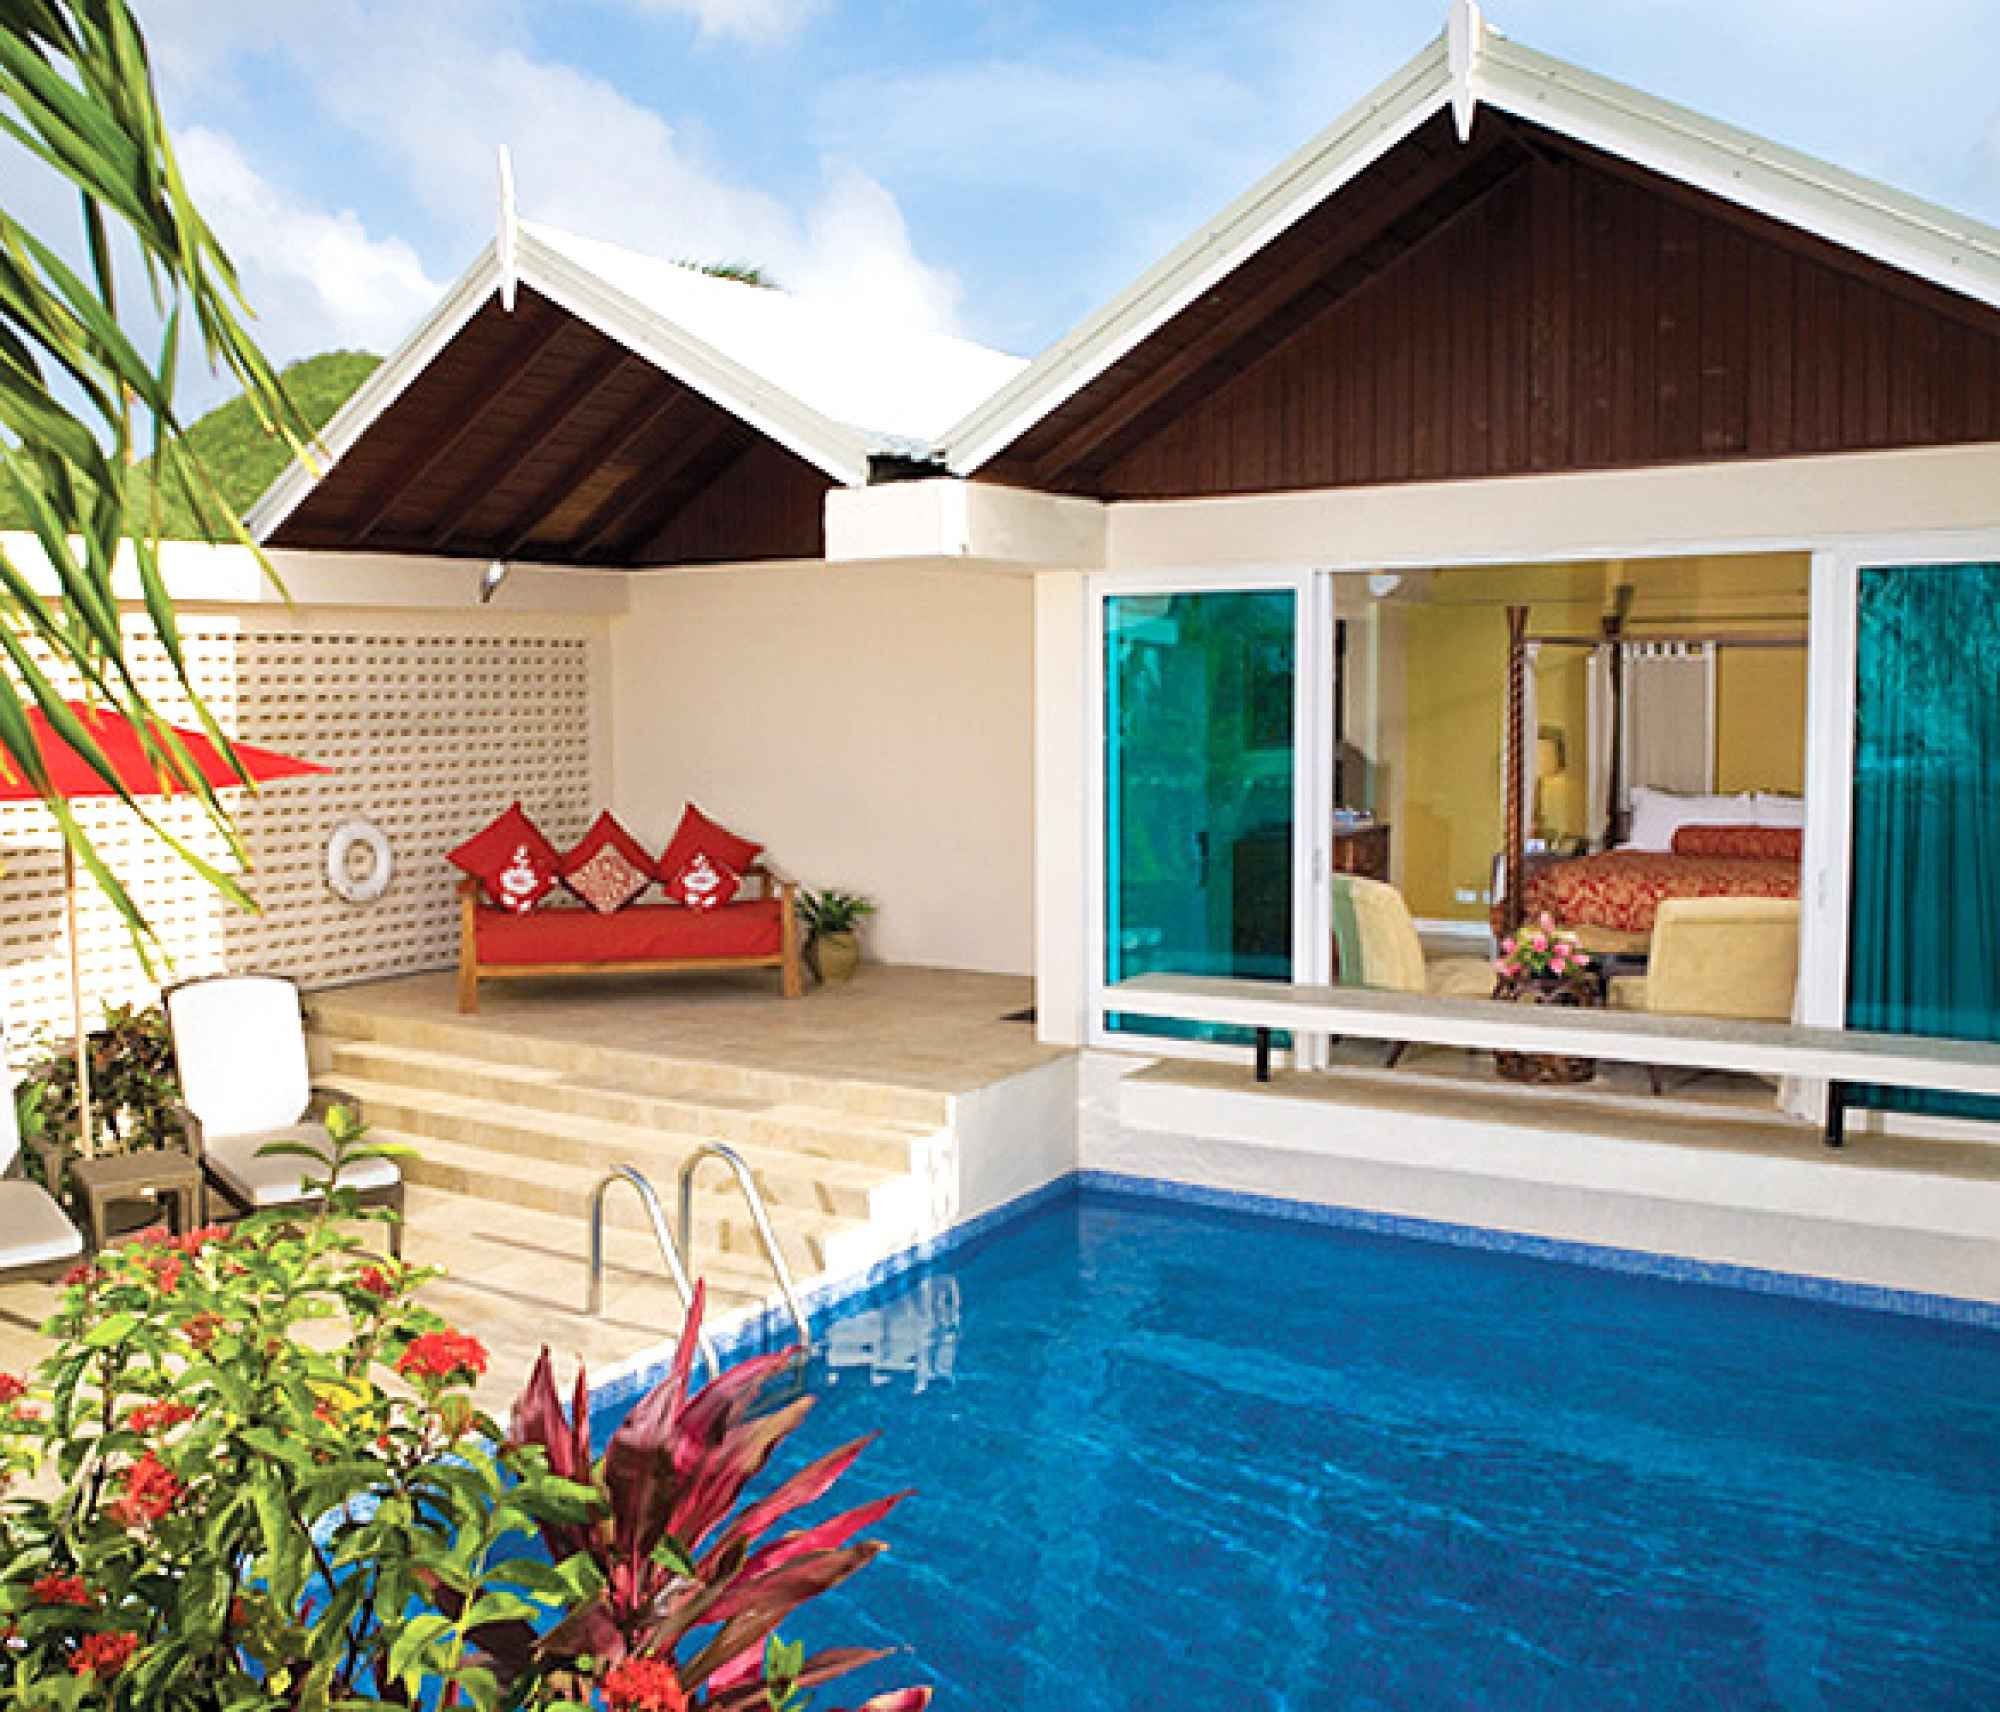 Honeymoon Resorts with Private Plunge Pools for Romantic